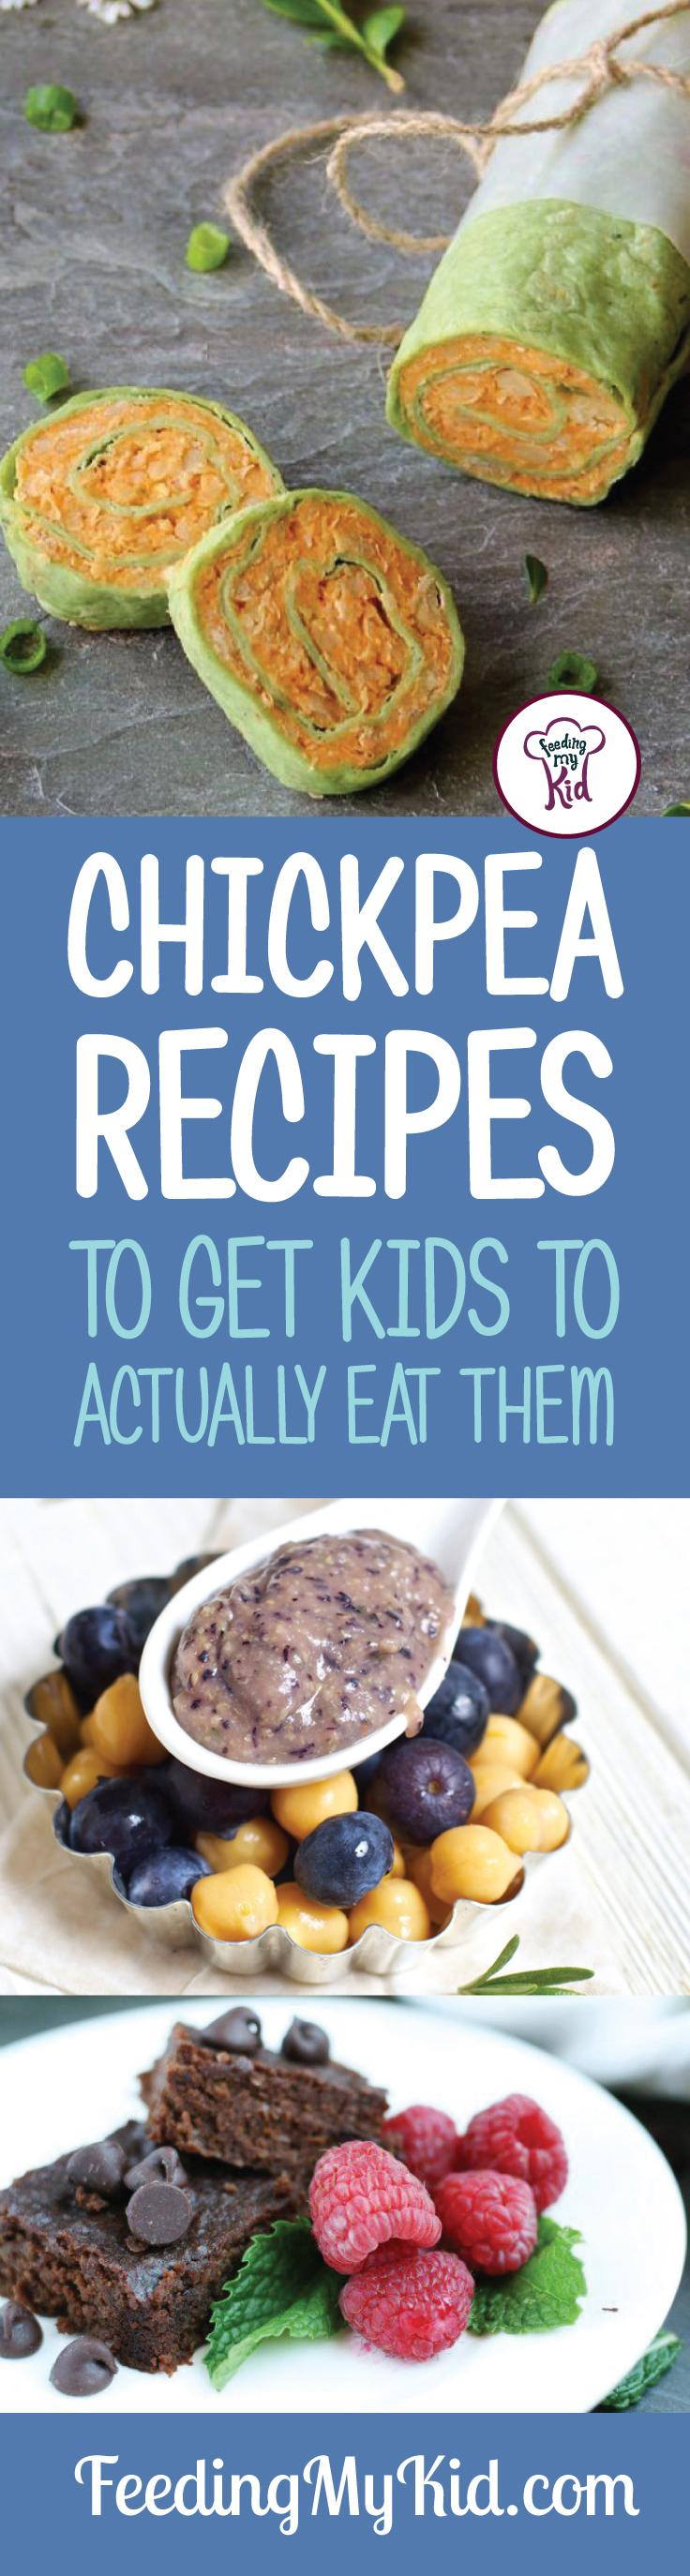 We decided to take you out of your chickpea comfort zone and help you try some new chickpea recipes! Feeding My Kid is a filled with all the information you need about how to raise your kids, from healthy tips to nutritious recipes. #FeedingMyKid #chickpeas #chickpearecipes #recipes